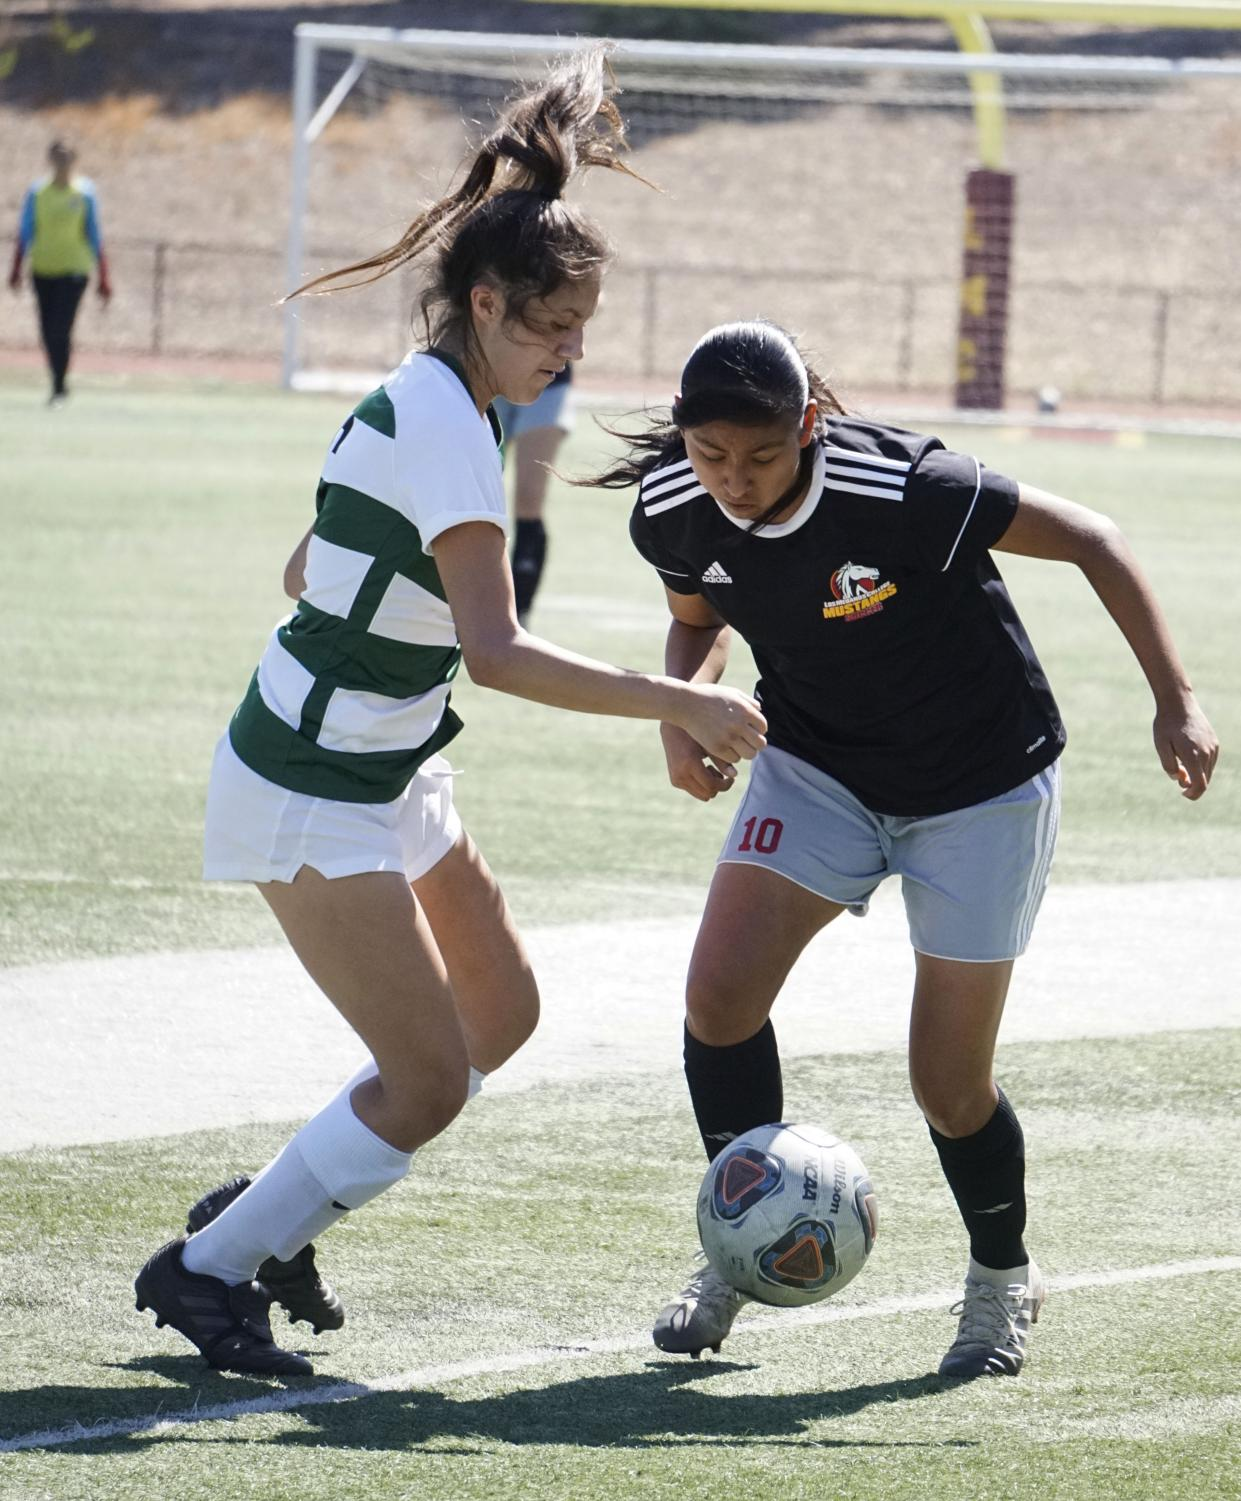 Litzy Rodriguez, No. 10, battles against a Cañada College defender for the ball. during a soccer game on Sept. 13.